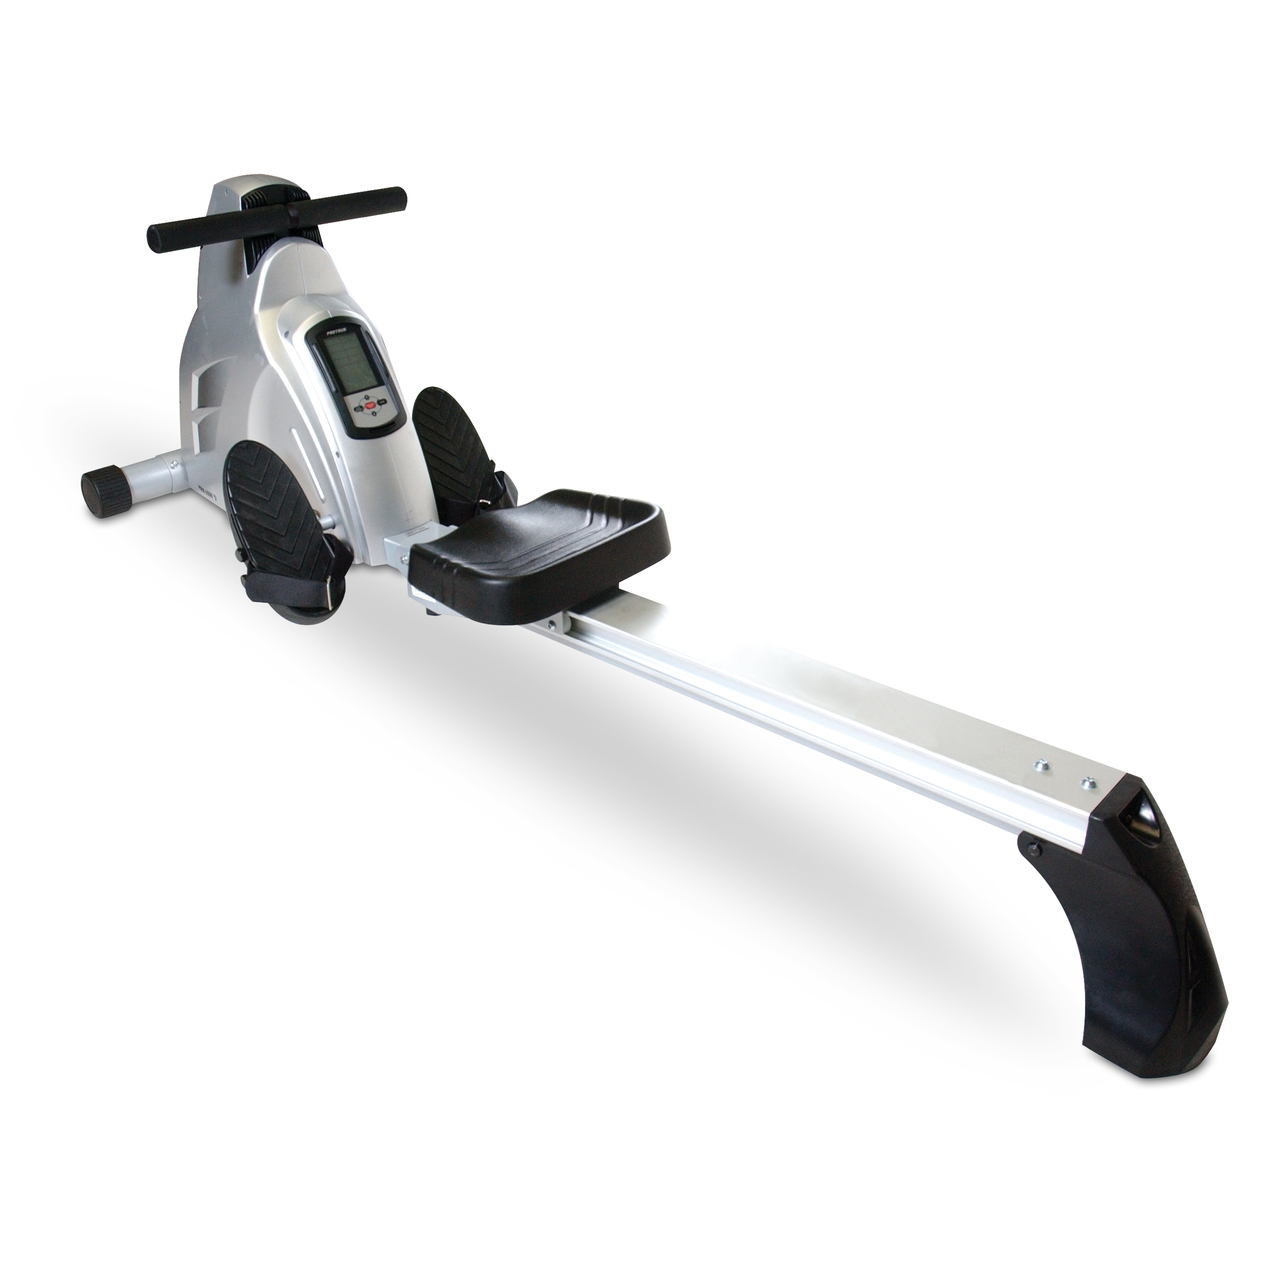 White Fitness Magnetic Rower, Programmable (Home Gym Use) by Velocity Exercise